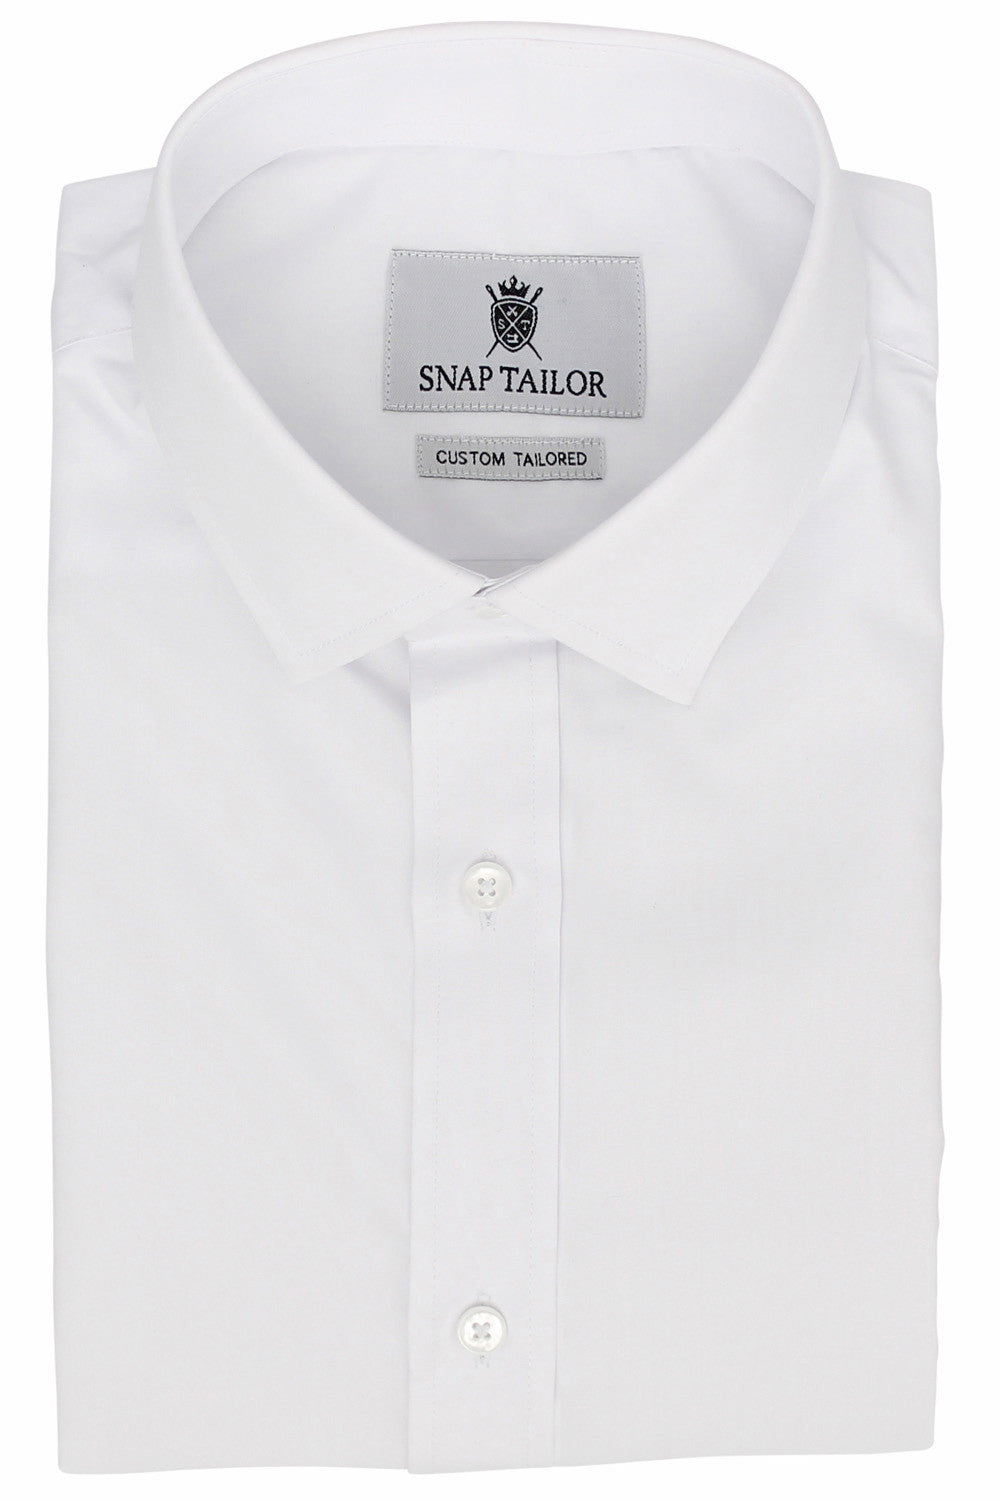 Photo of the Diamond Solid Dress Shirt in White